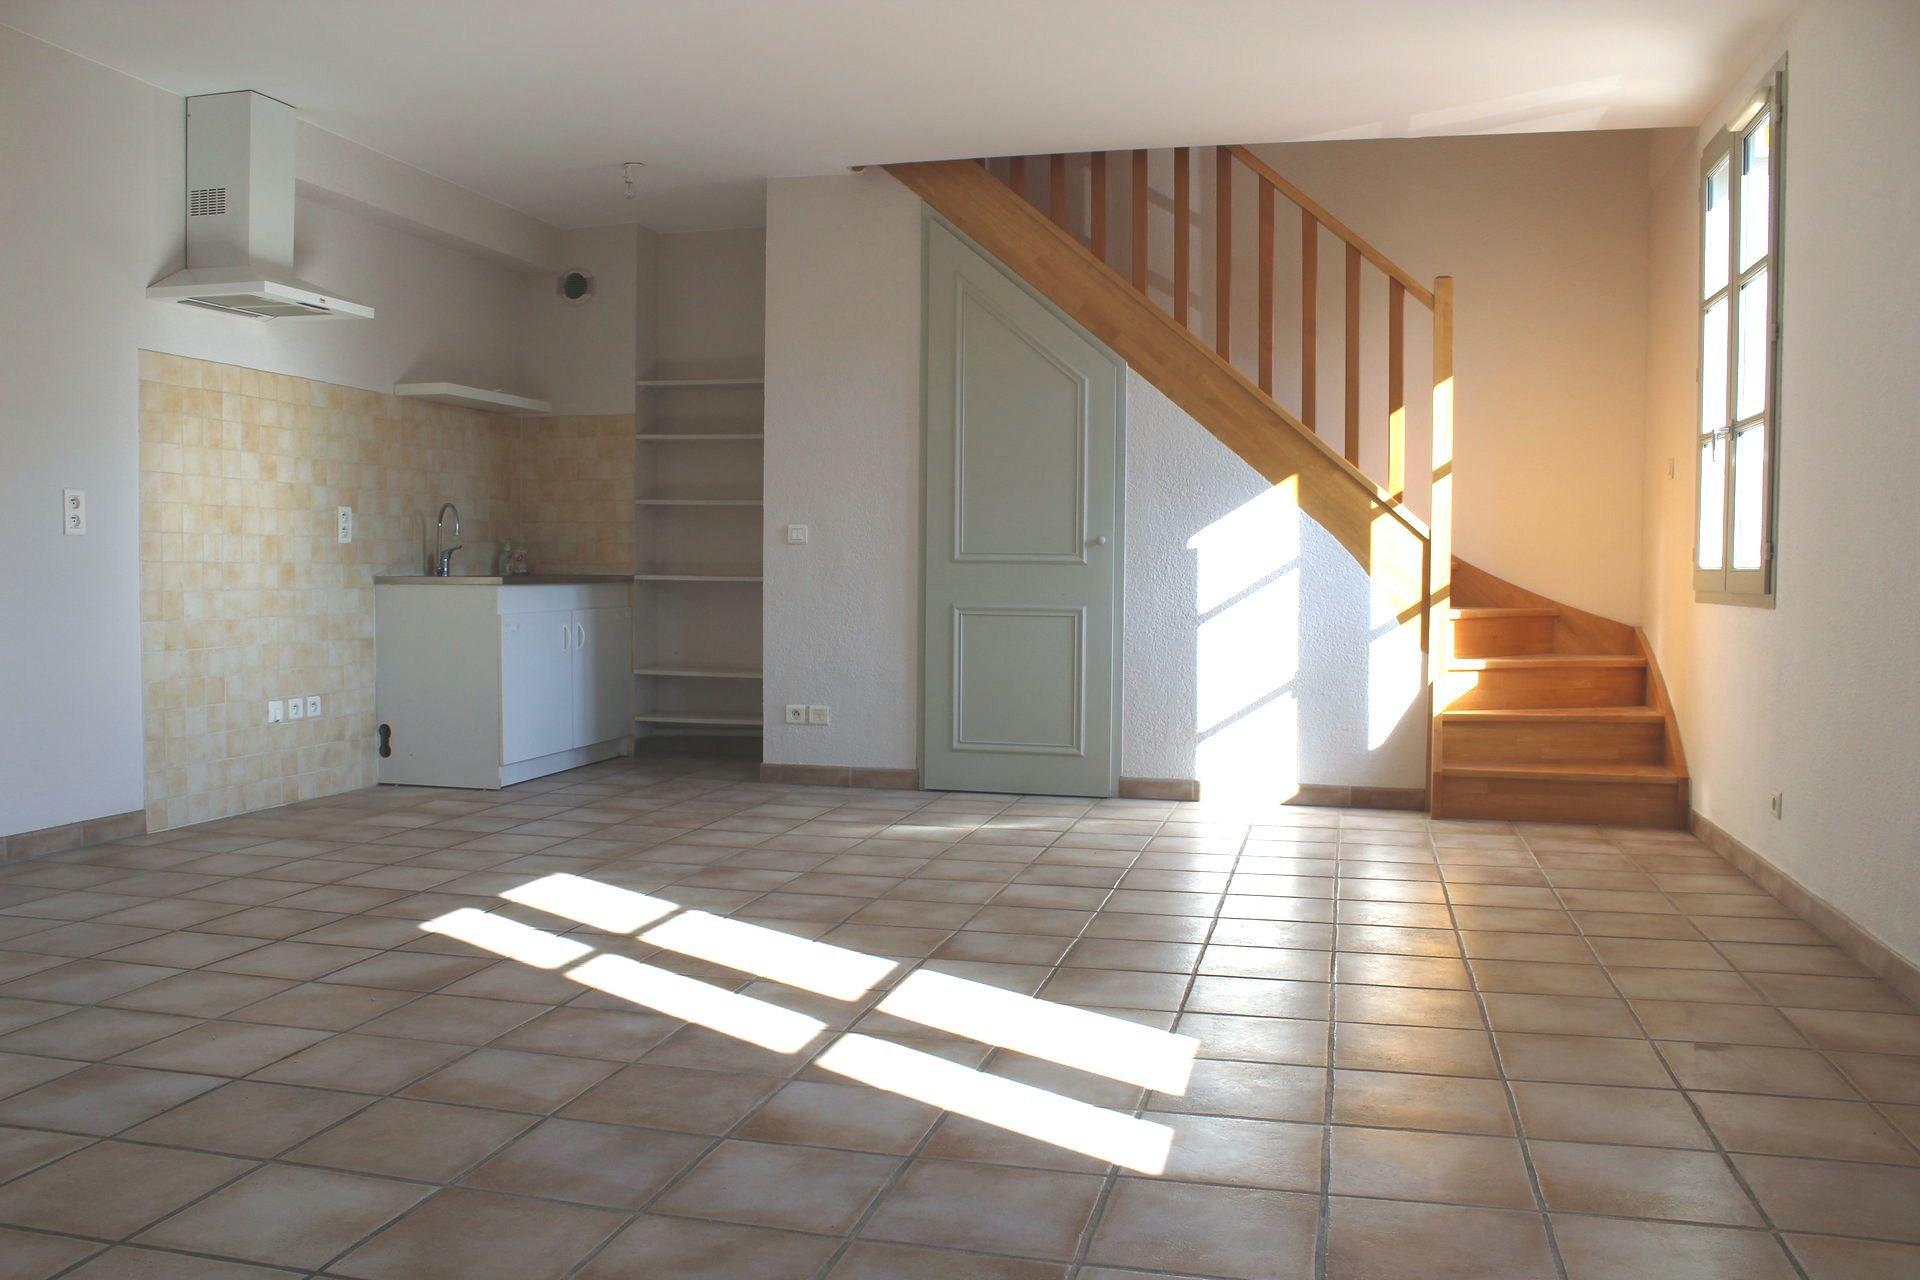 Location Appartement TARASCON Mandat : 3774